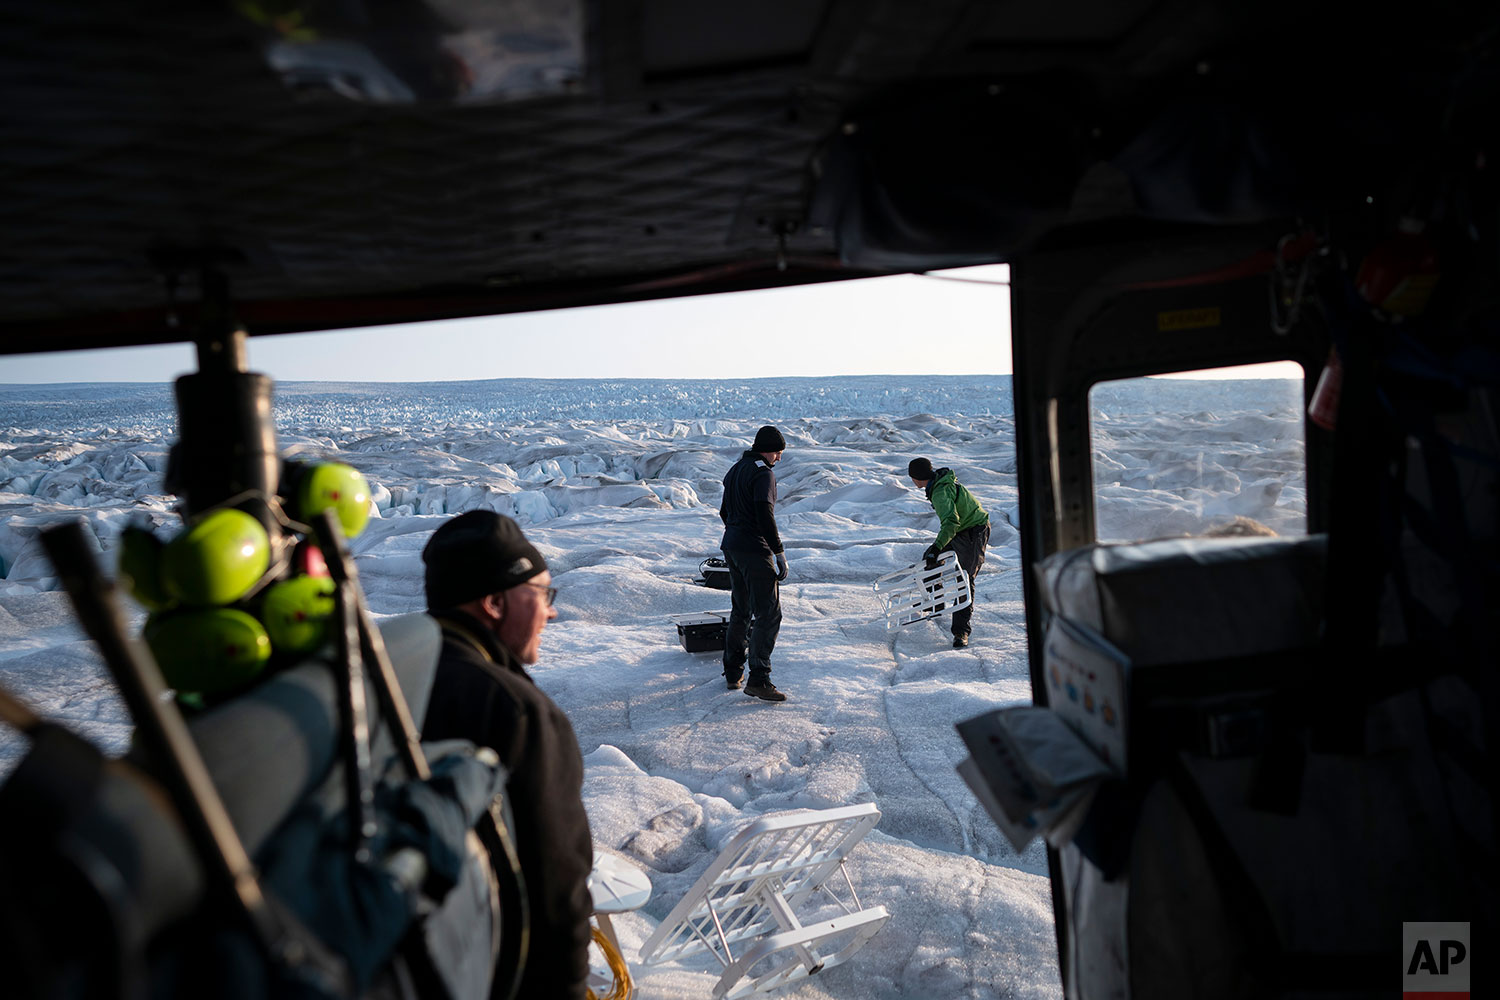 In this Aug. 16, 2019 photo, New York University air and ocean scientist David Holland, left, and field safety officer Brian Rougeux, right, are helped by pilot Martin Norregaard  as they carry antennas out of a helicopter to be installed at the Helheim glacier, in Greenland. (AP Photo/Felipe Dana)